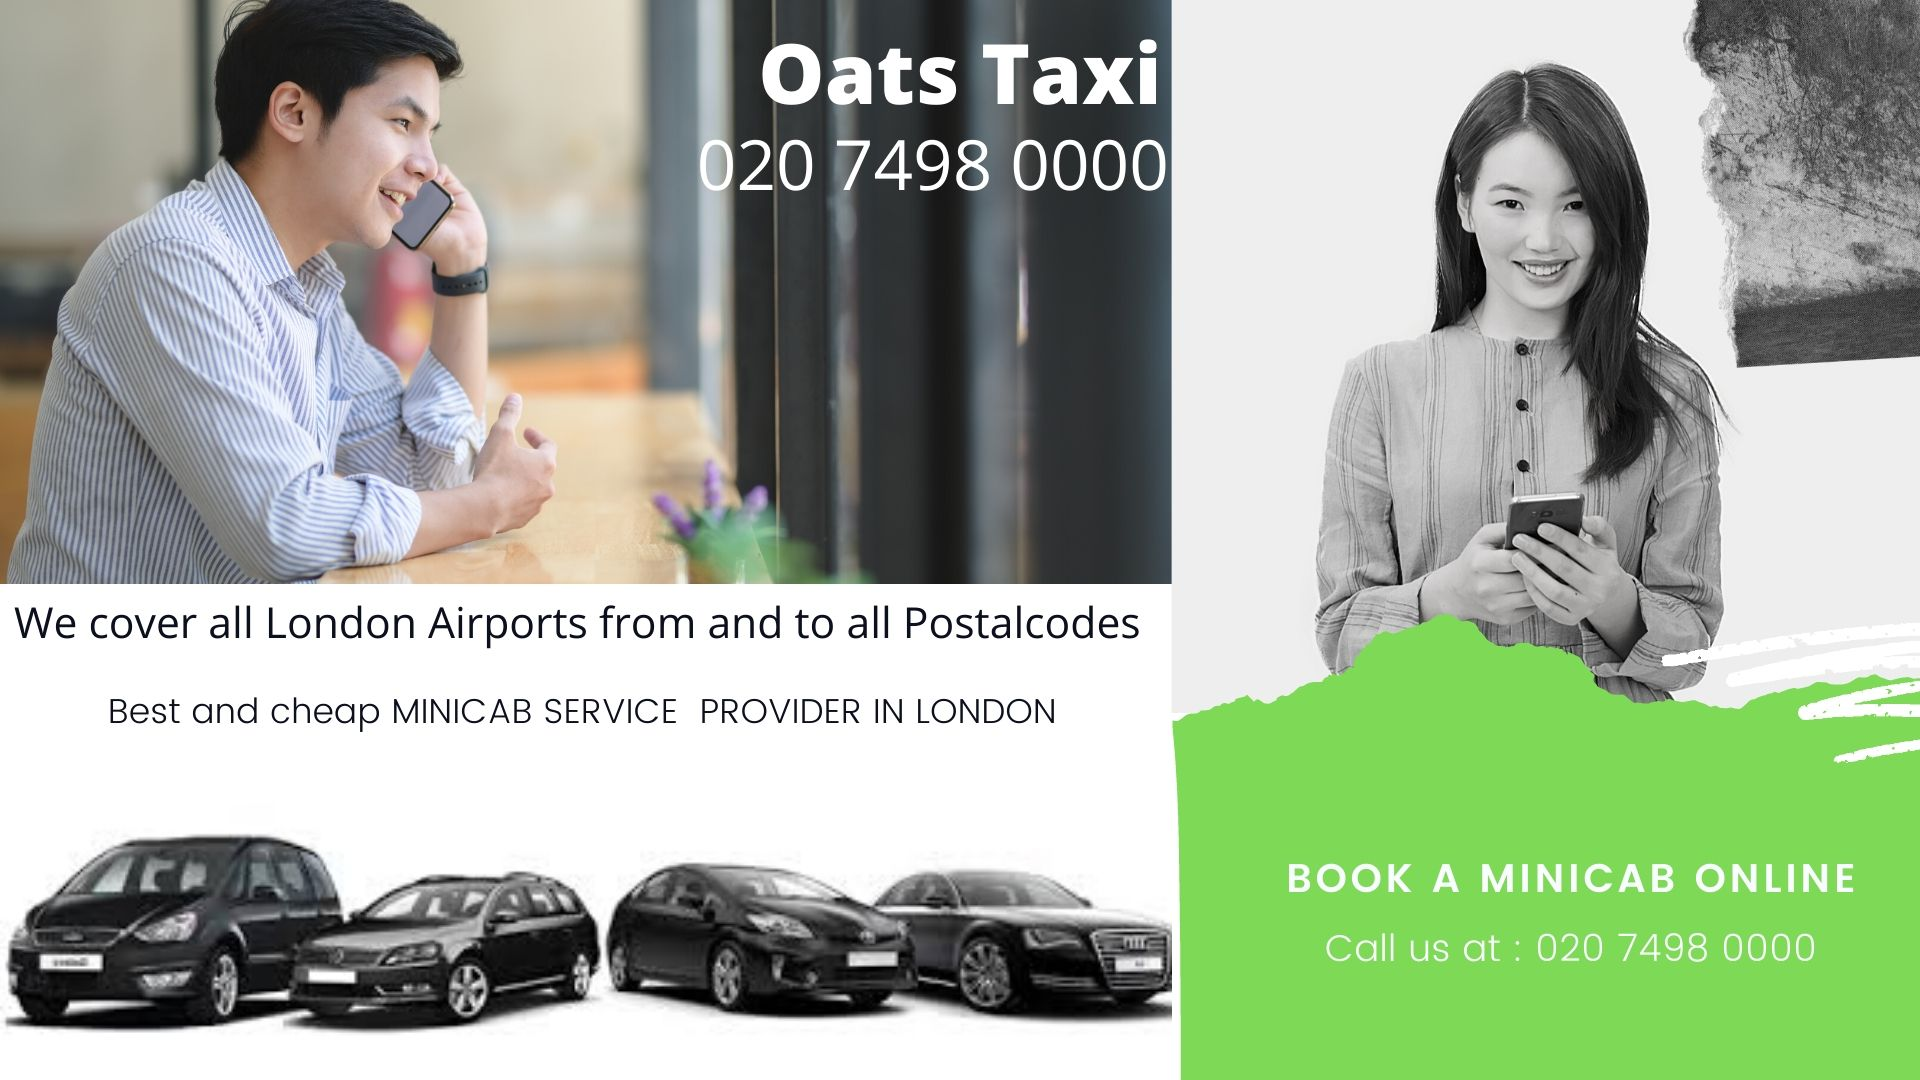 Nearest Taxi Office in Chelsea | Nearest Taxi Office in Gatwick Airport | Call now : 02074980000